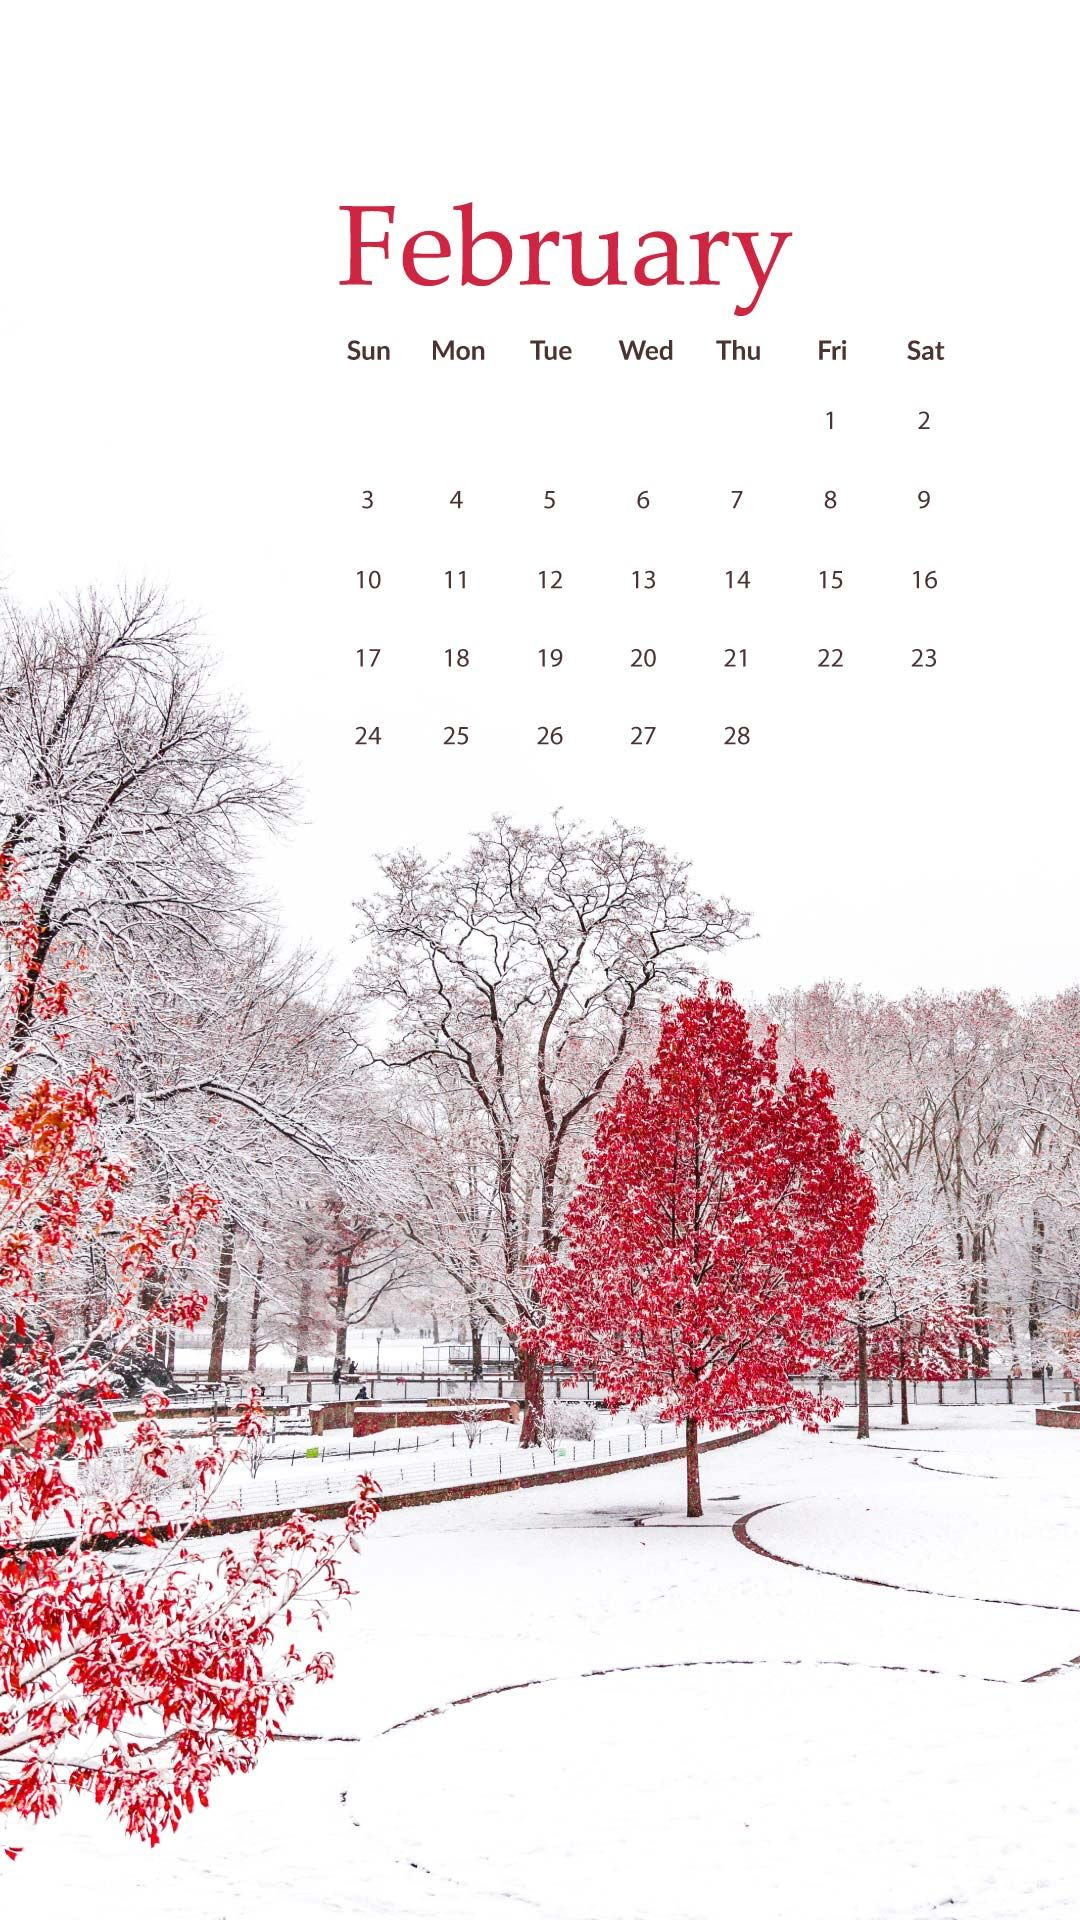 February 2019 Calendar Girly February 2019 Calendar free wallpapers available for iPhone and